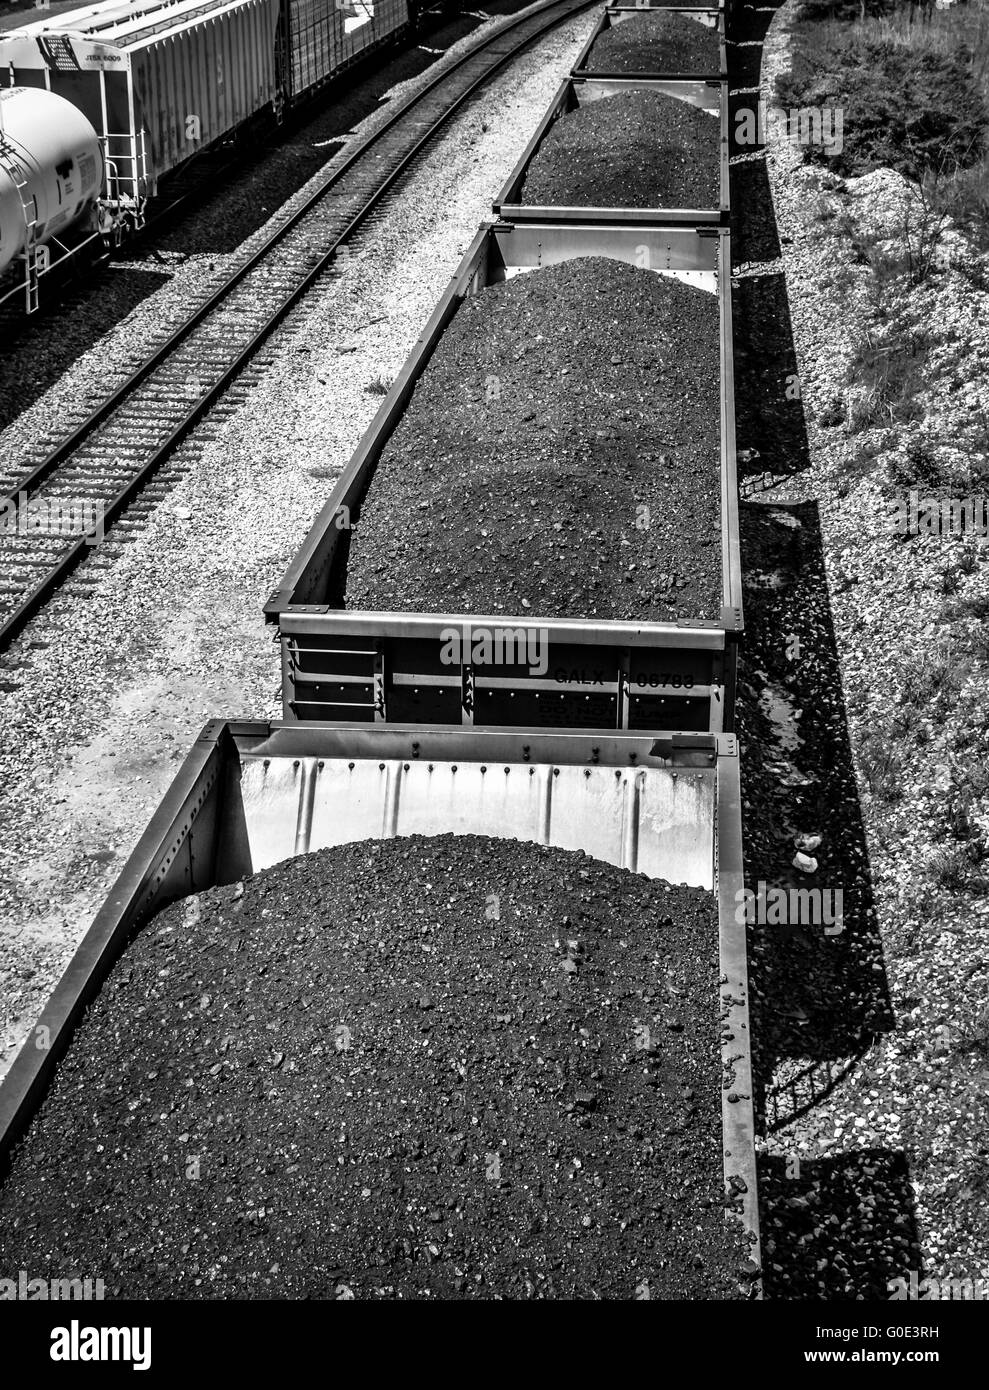 Overhead view of train cars piled high with black coal on railroad tracks along side tanker cars - Stock Image